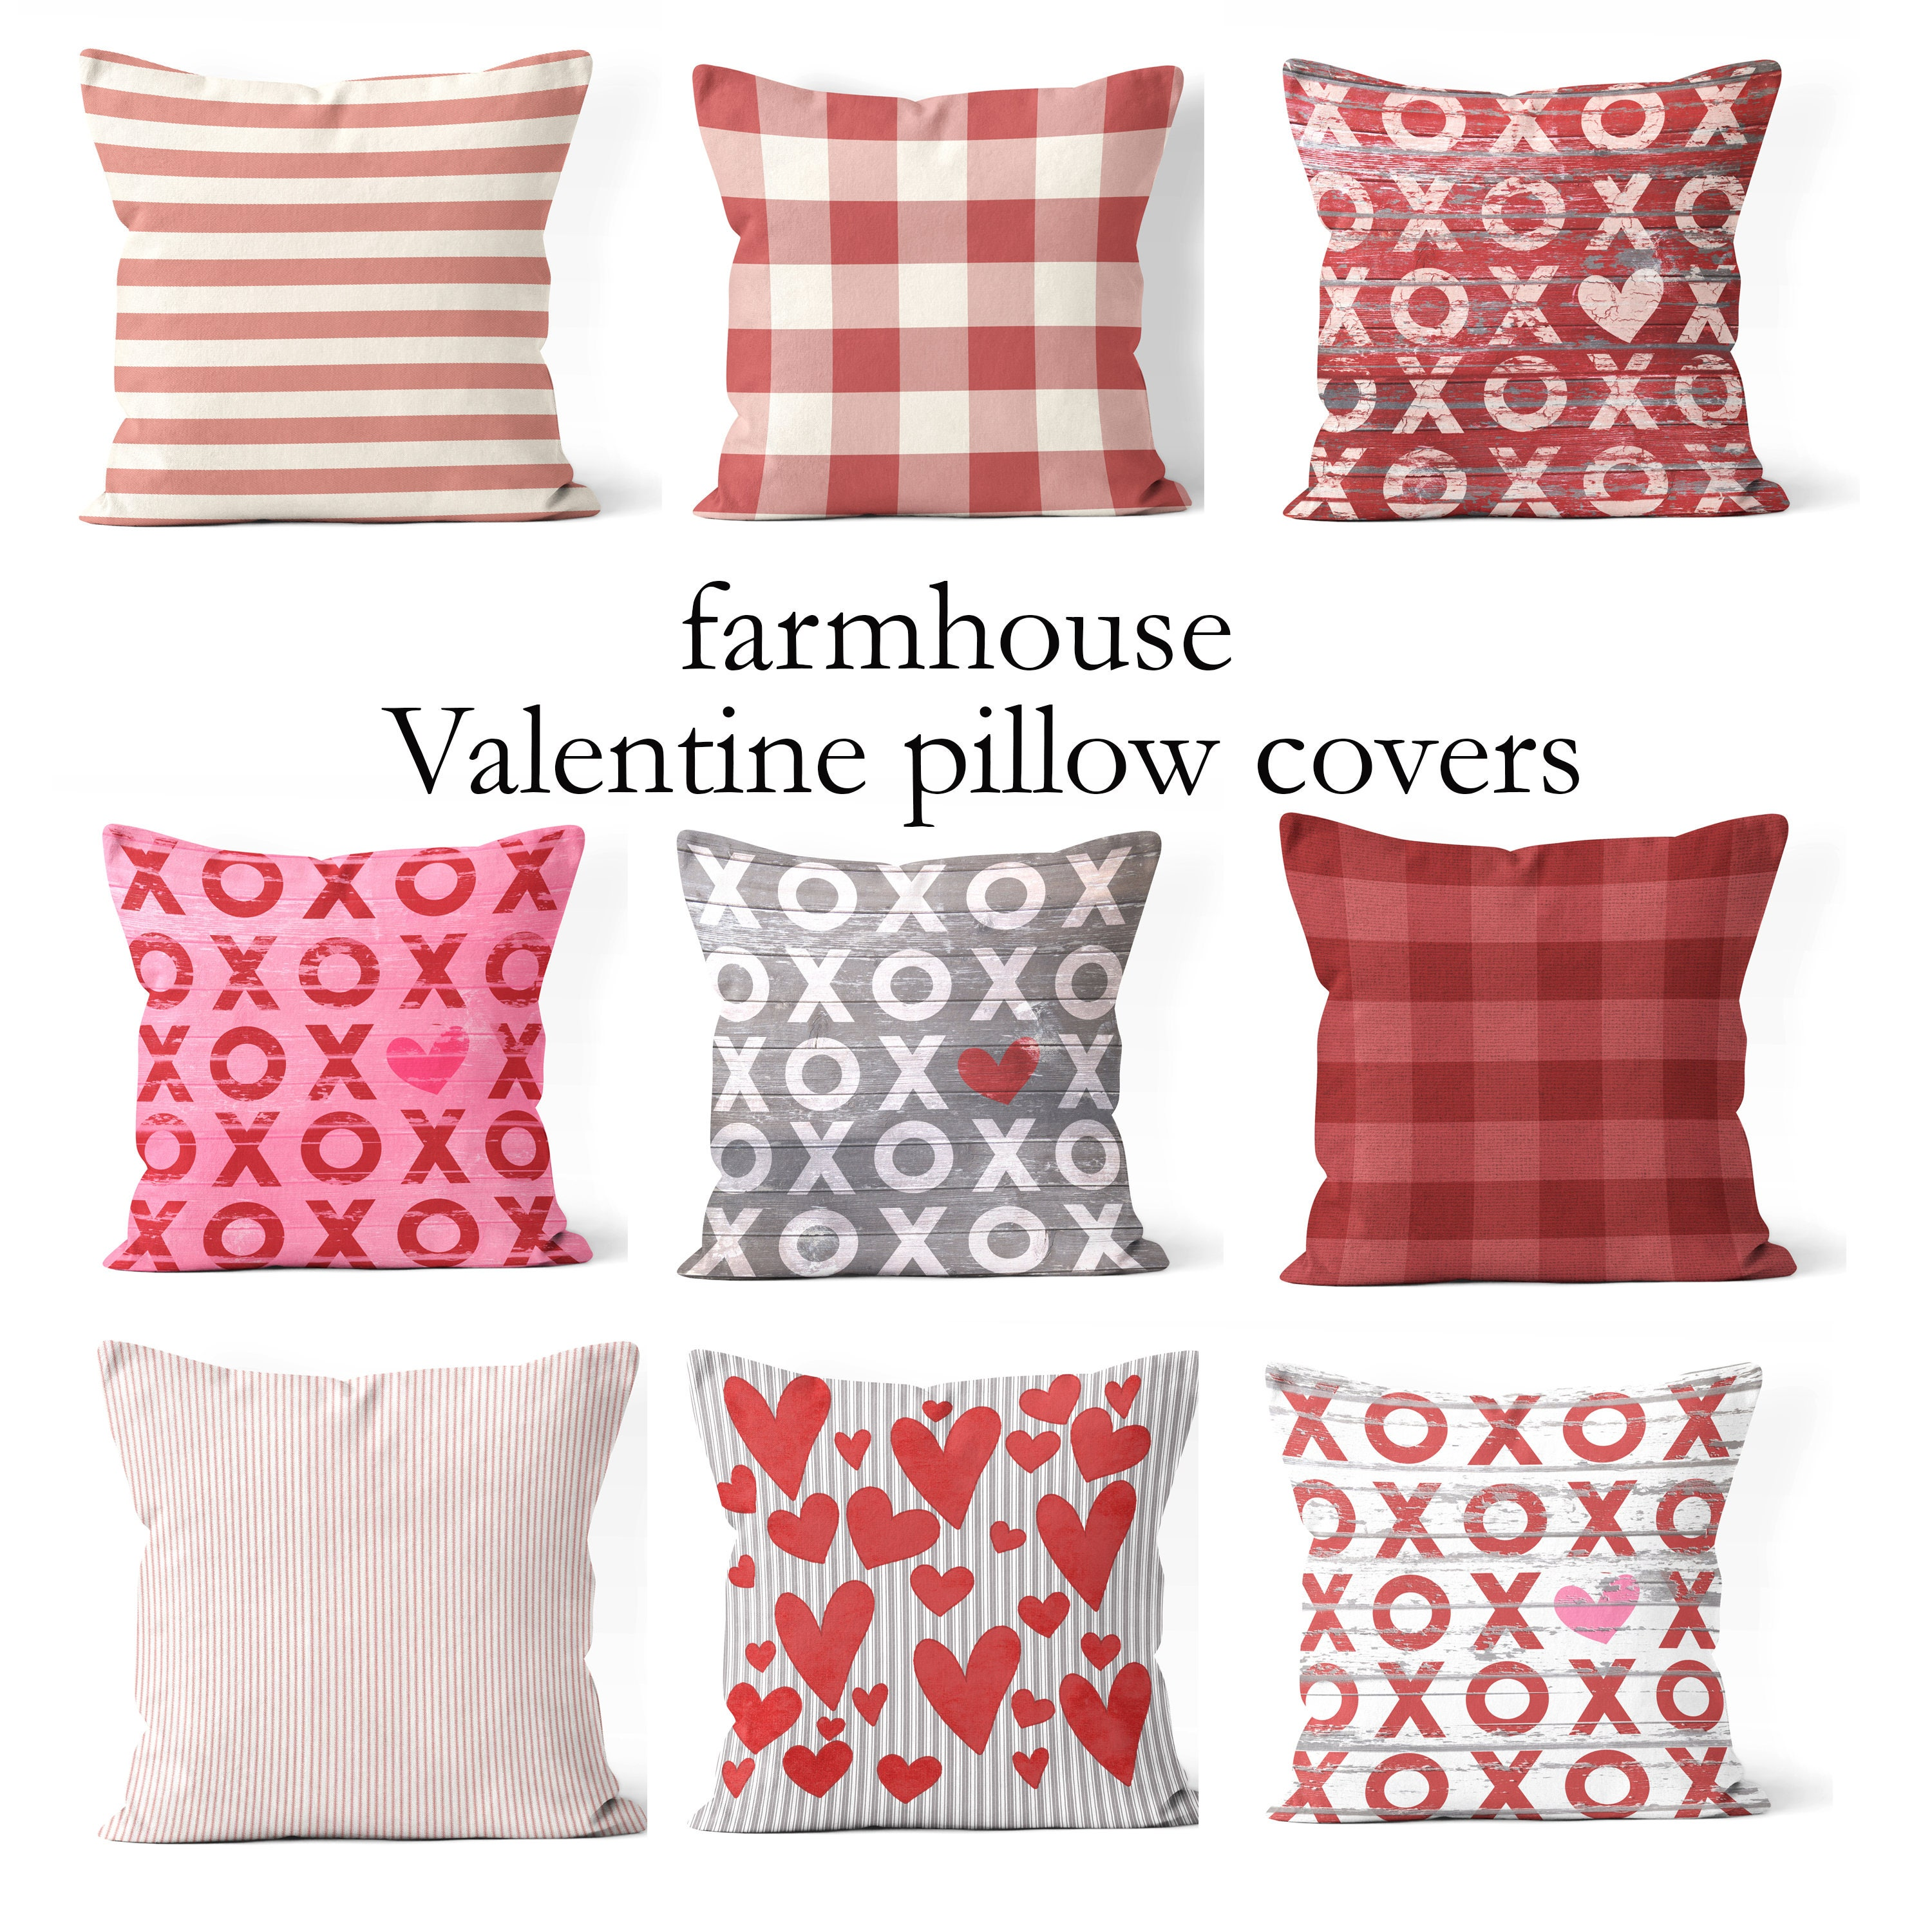 valentines day pillow covers 18x18 20x20 16x16 or 14x14 pink and red farmhouse valentine pillow covers valentines day decor